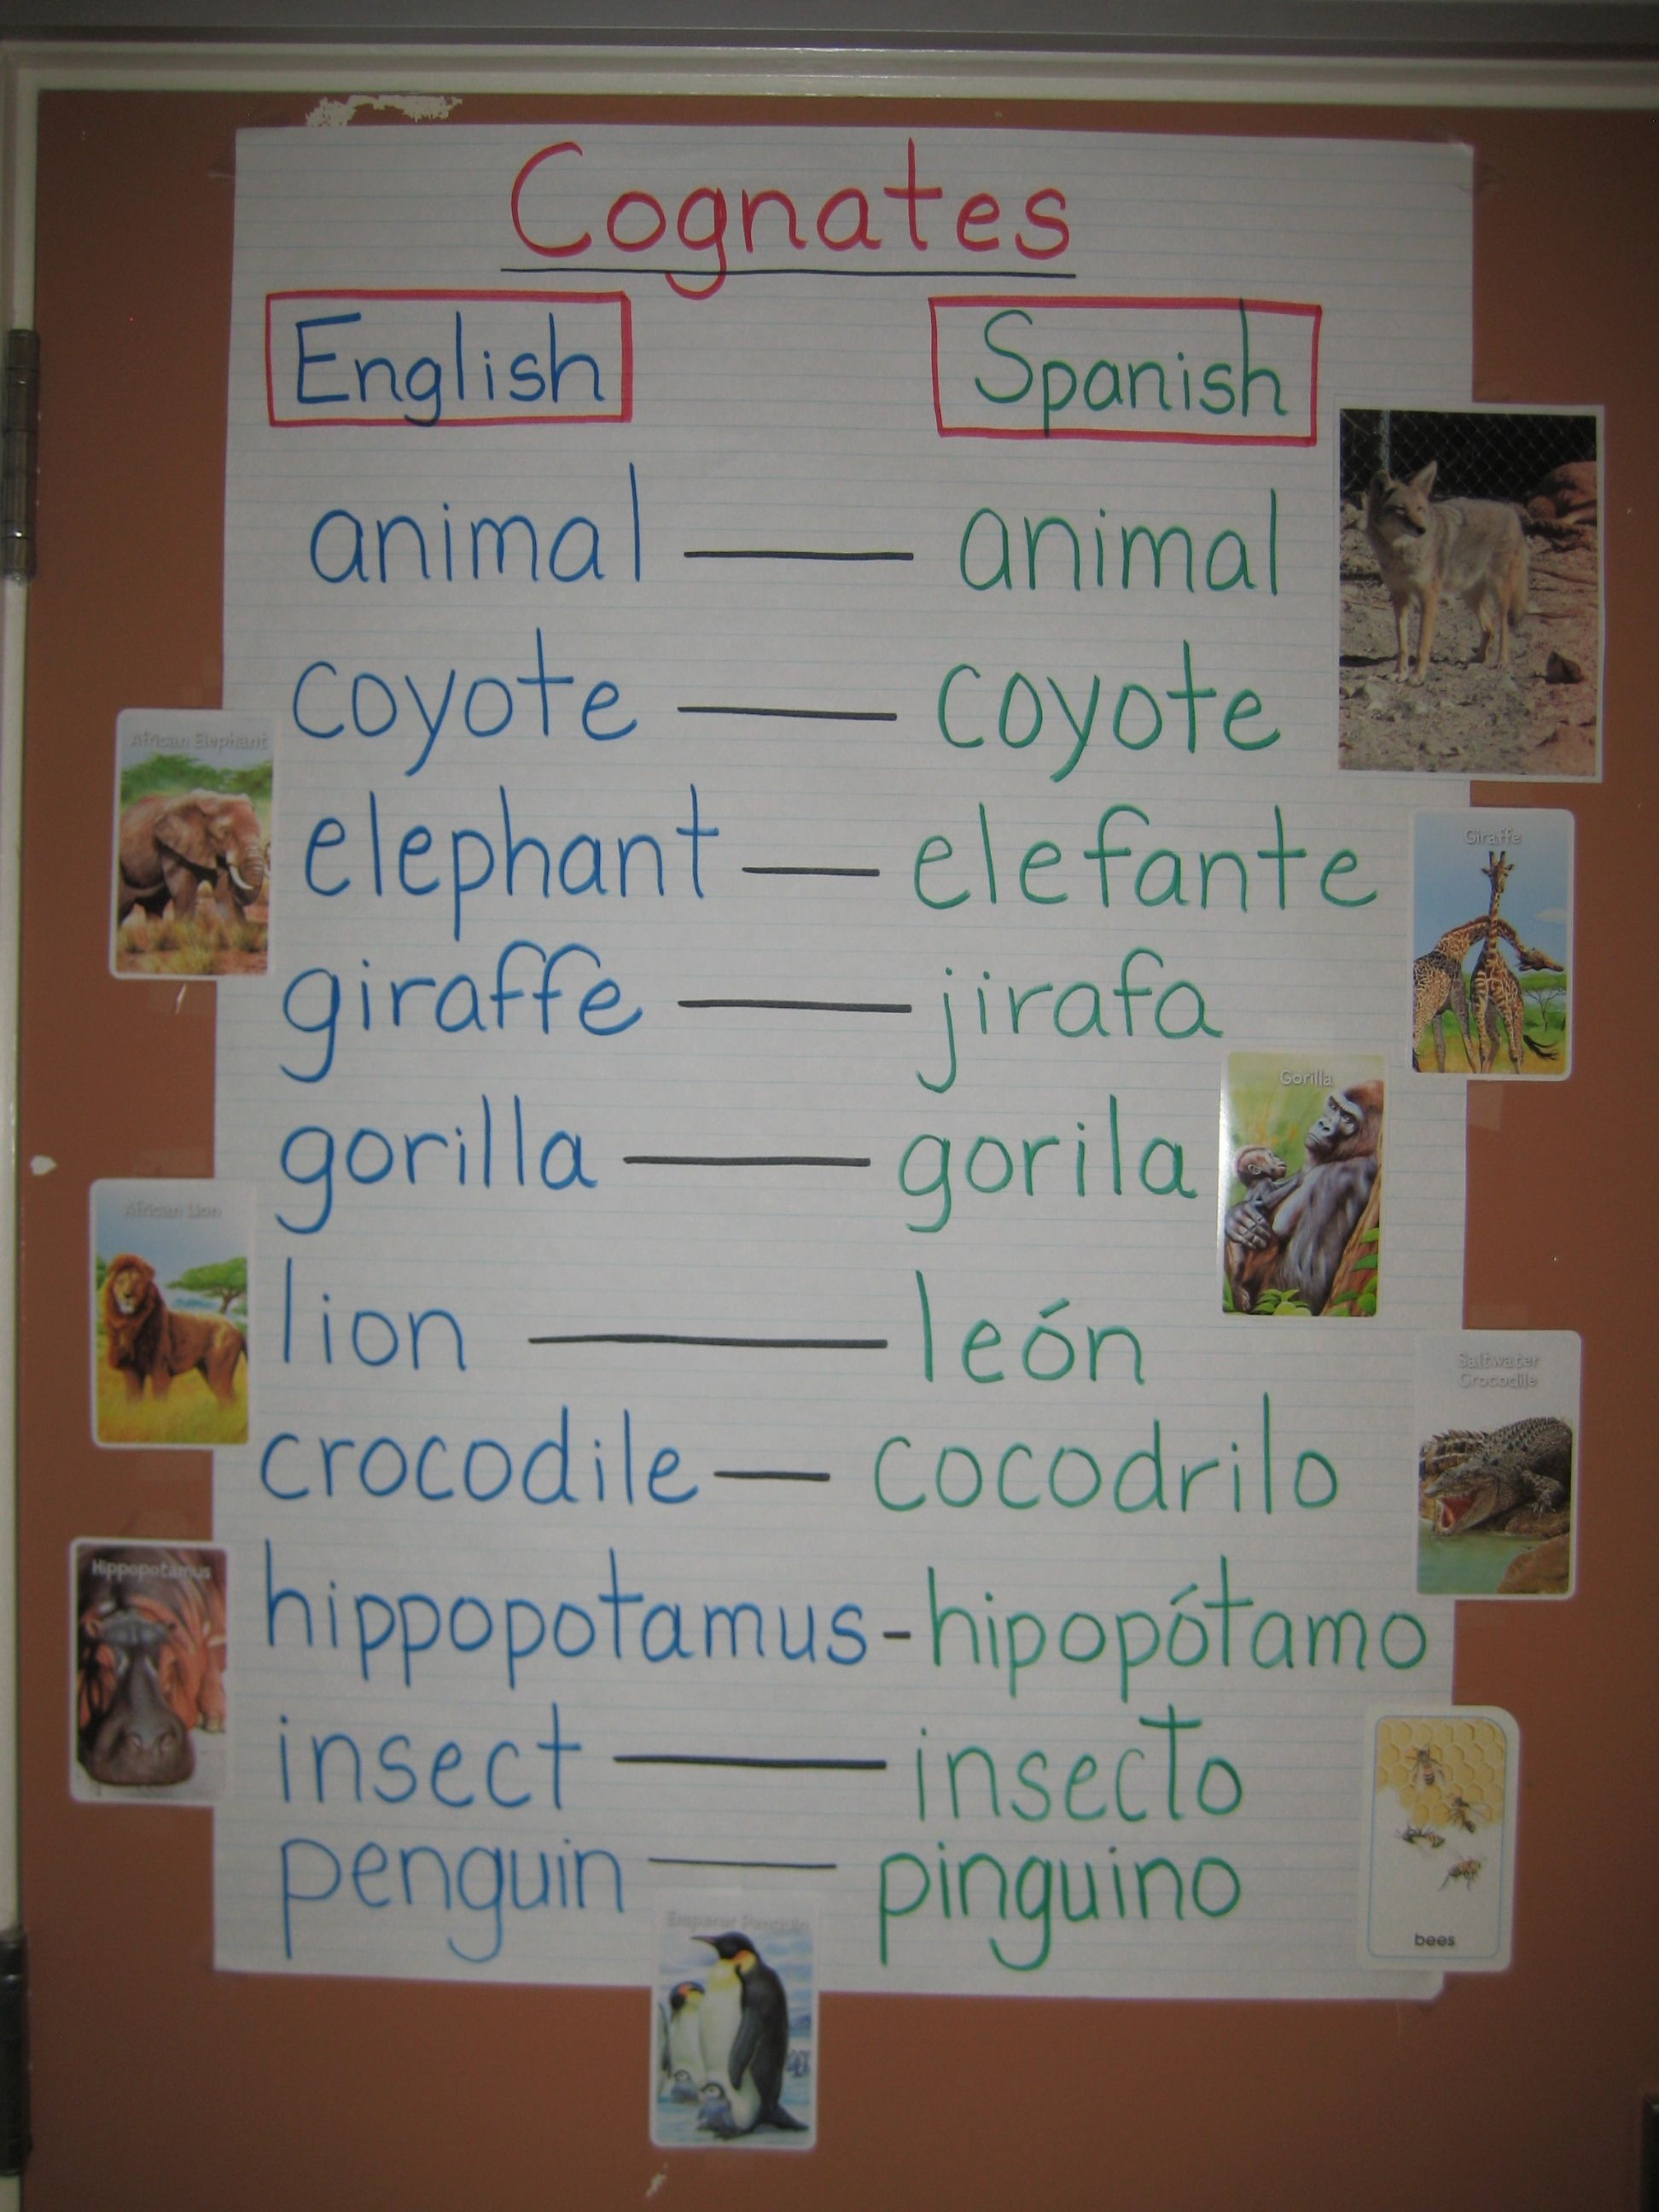 Cognates Help With Vocabulary Development Mary Wallis